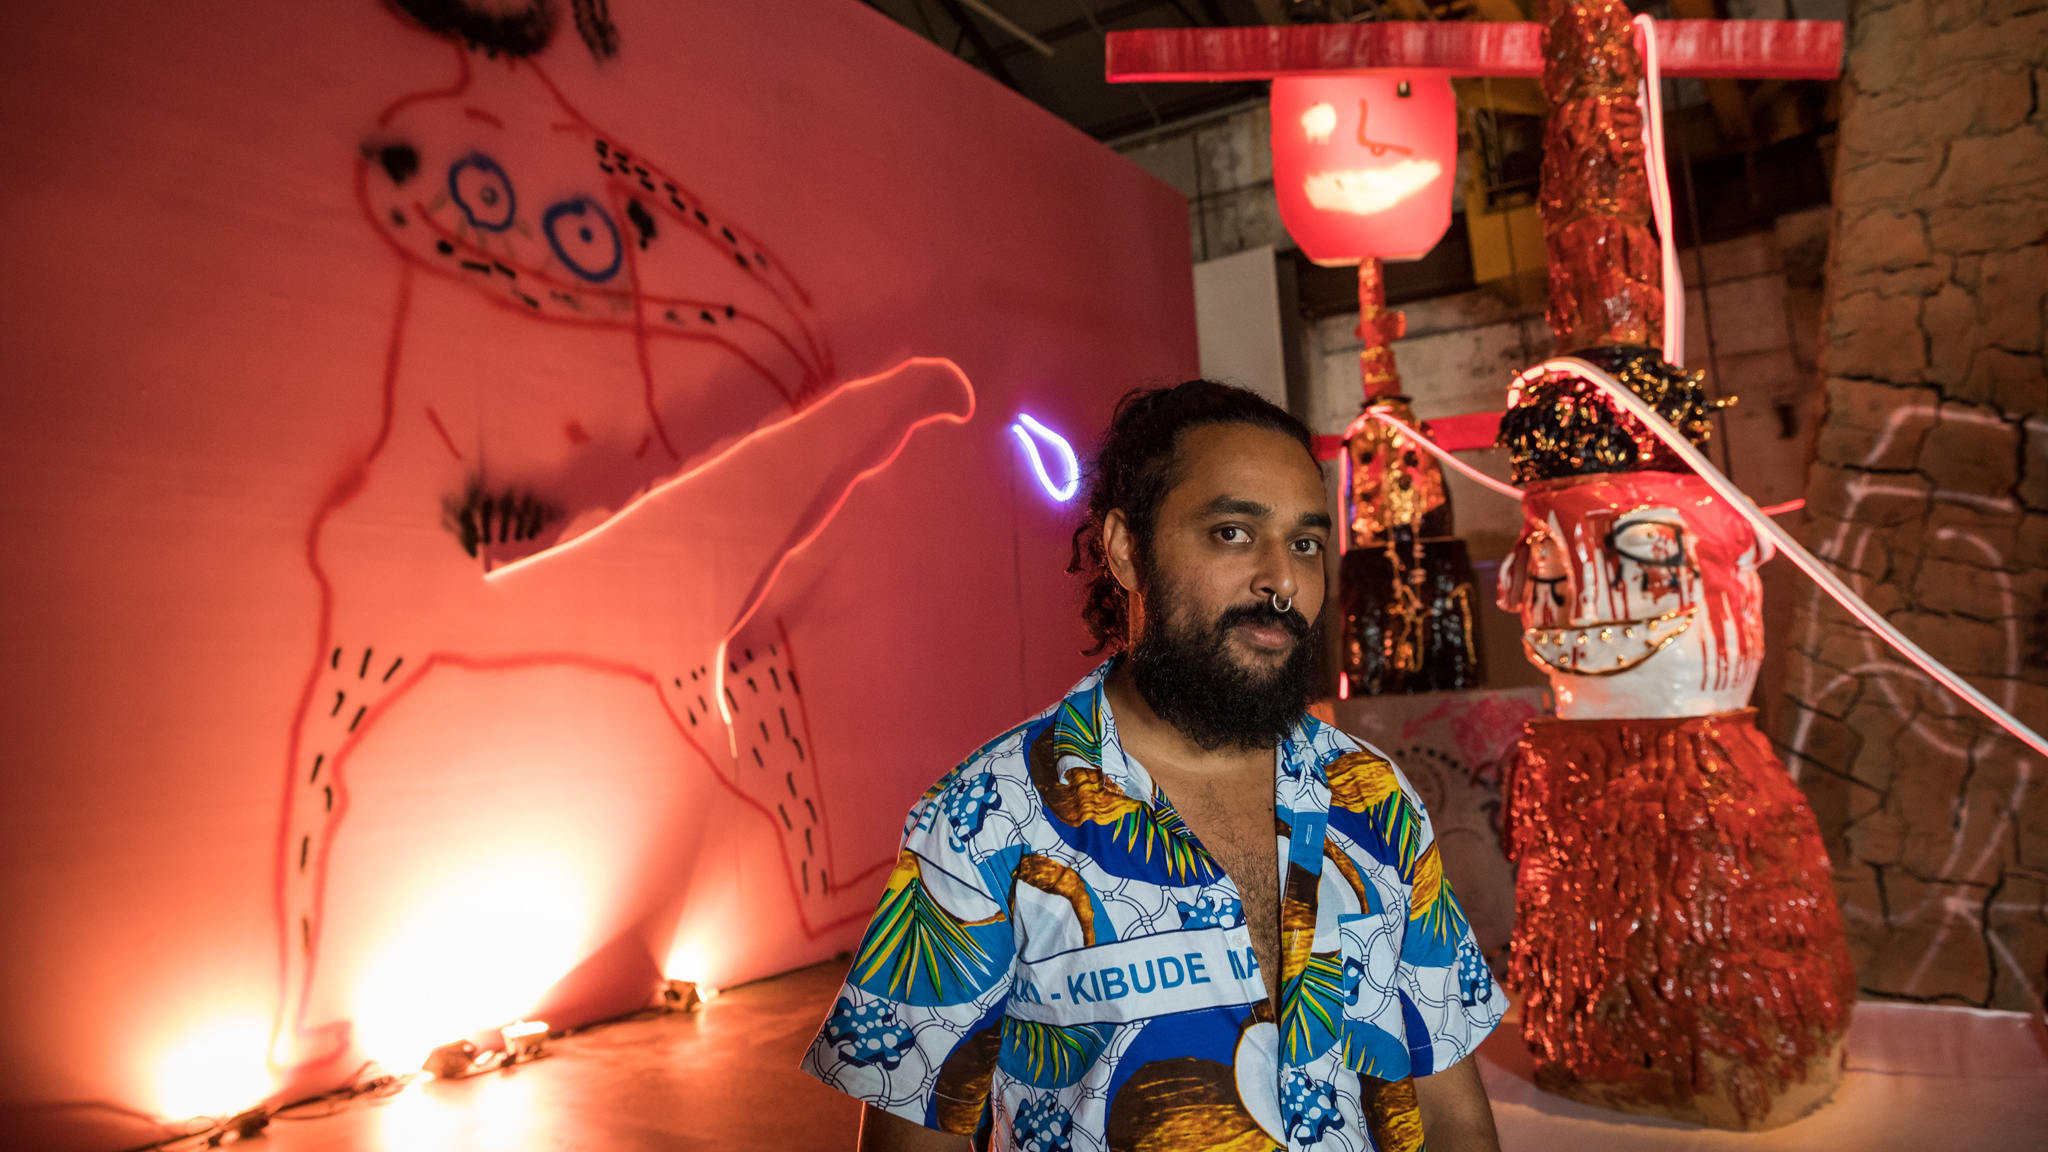 Ramesh Mario Nithiyendran 2017 portrait taken at Carriageworks as part of The National Biennial of New Australian Art 2017 (c) Time Out Sydney photographer credit Daniel Boud